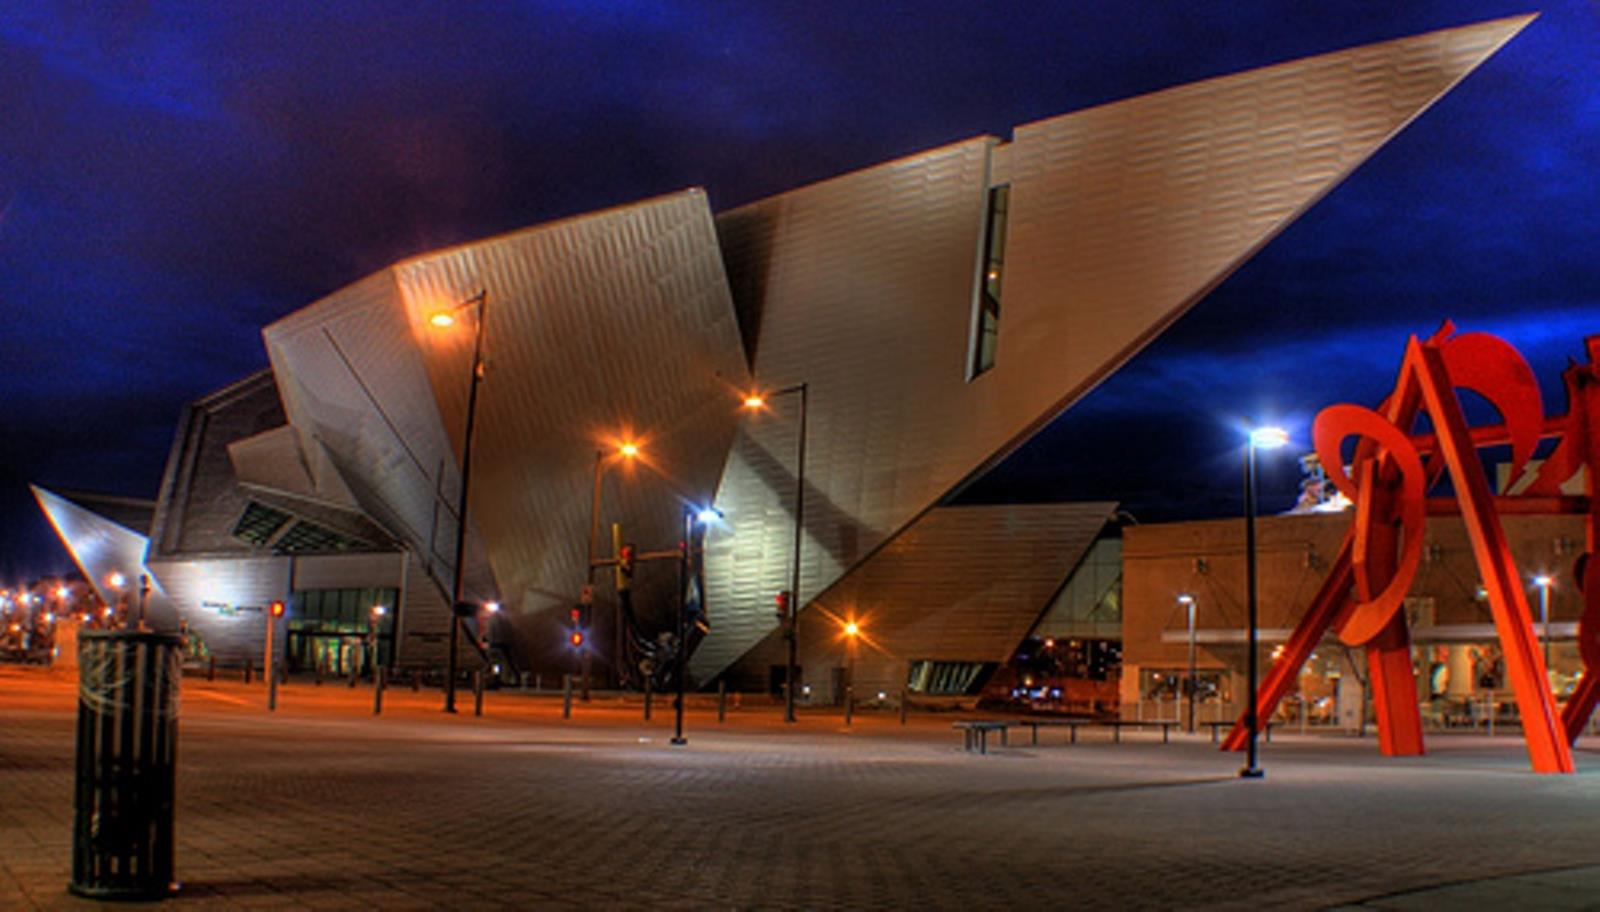 Denver Art Museum at night. Credit: at en.wikipedia